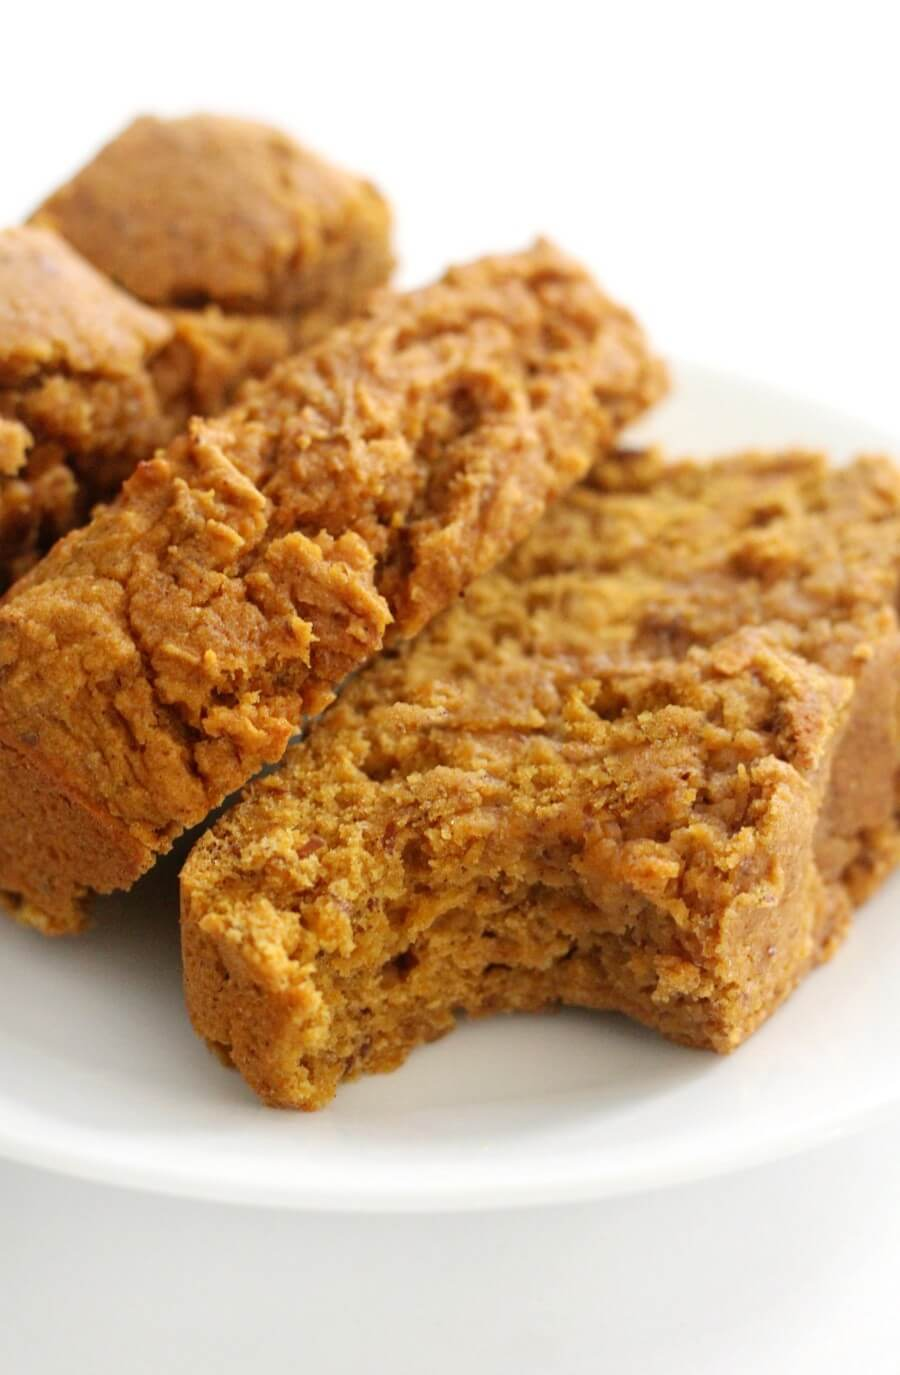 half-eaten slice of gluten-free pumpkin bread on white plate